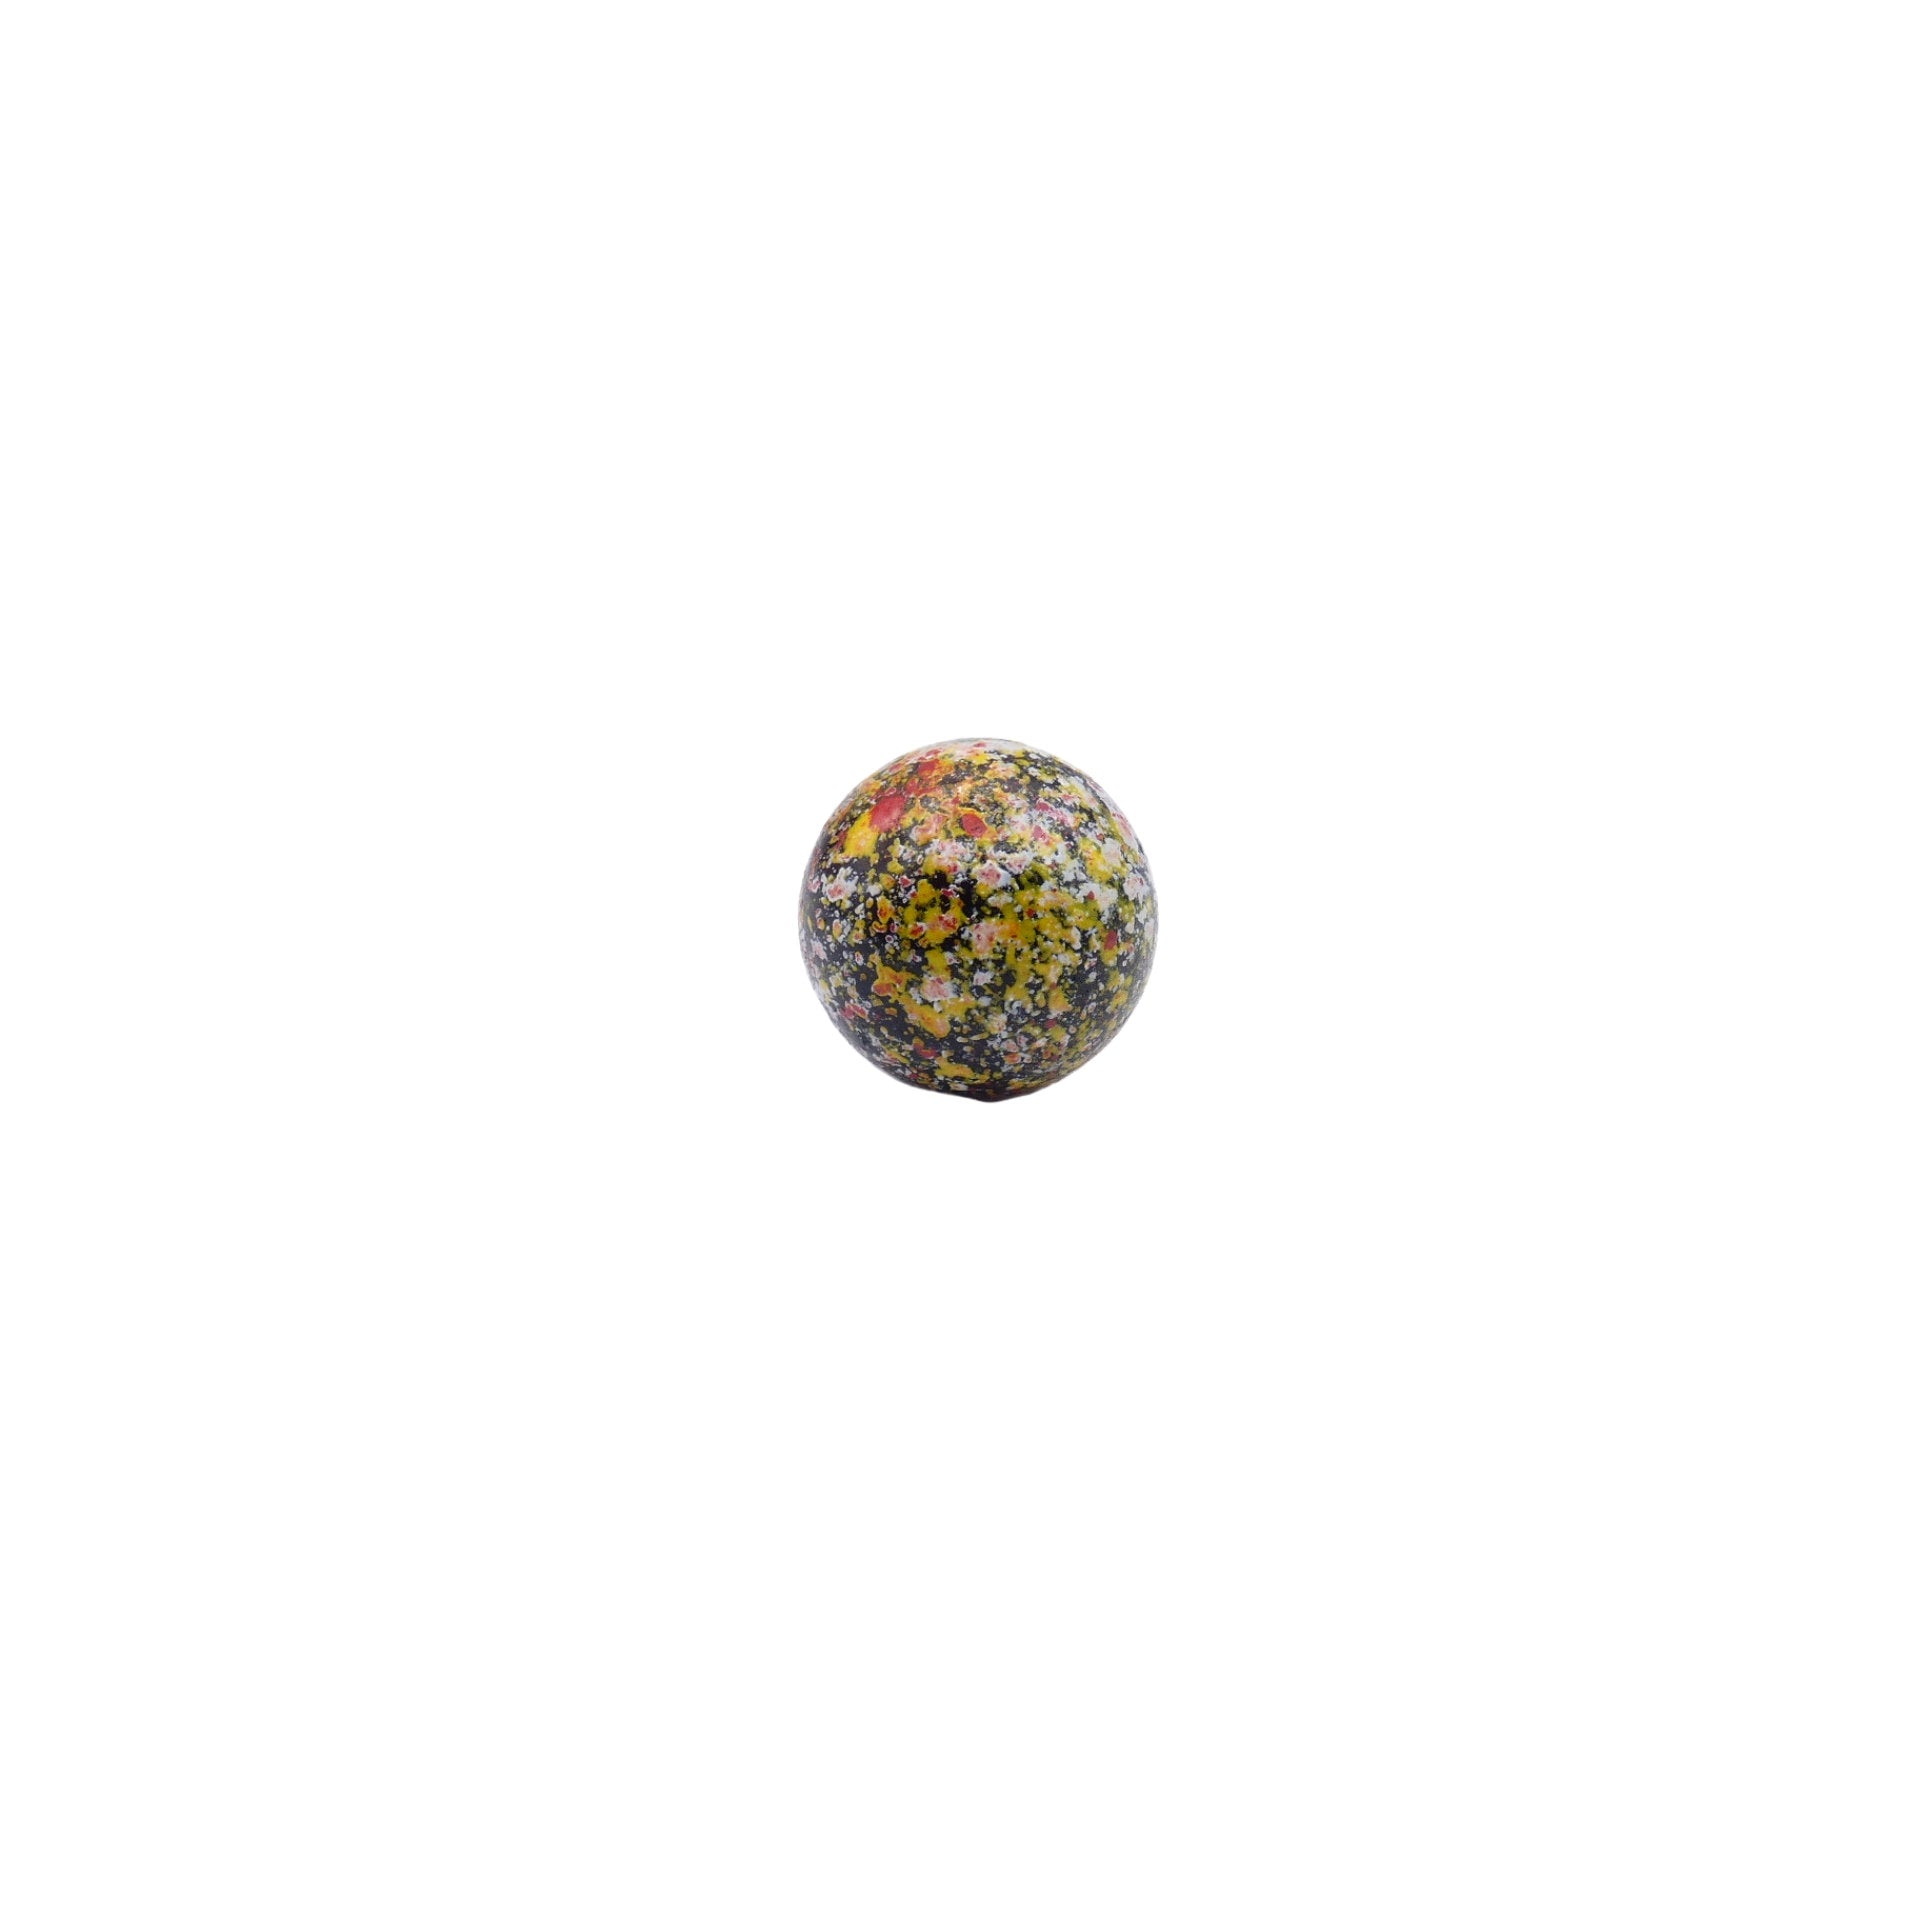 Vintage Marbles - Vacor Galaxy Multi-Splash Pee Wee Marble